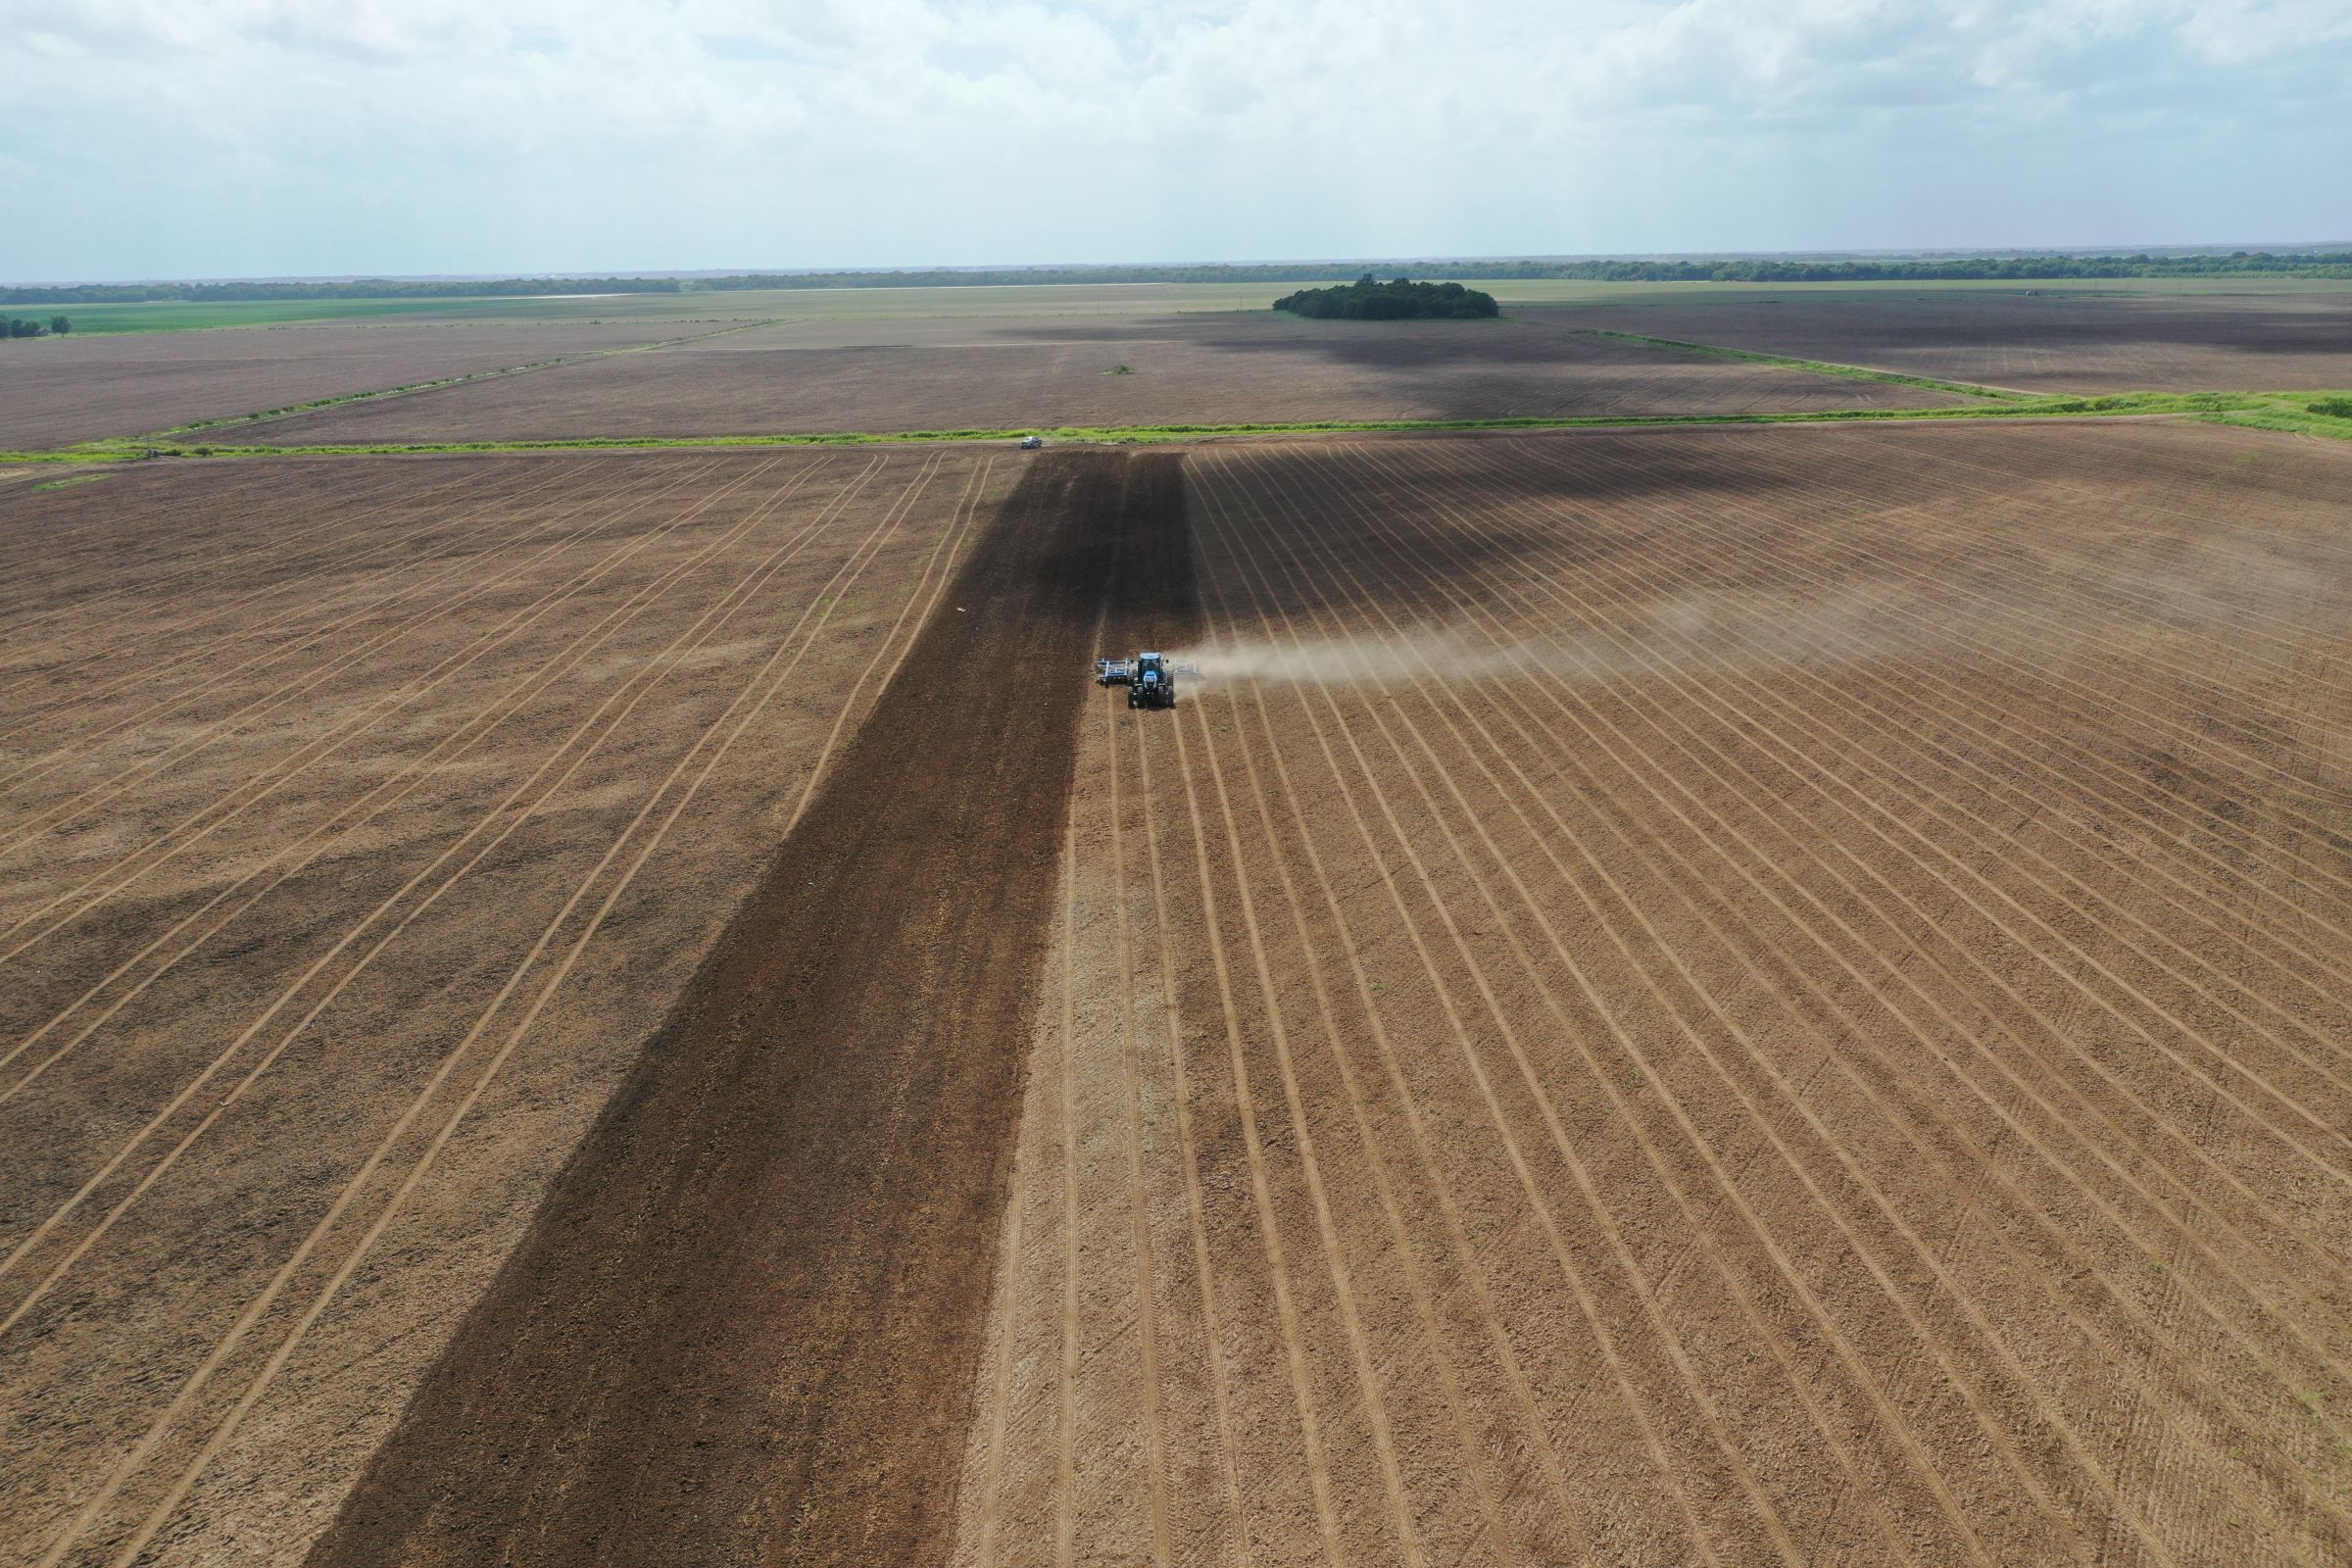 chicot-county-arkansas-1102-acres-listing-number-15259-5-2020-11-16-213038.JPG